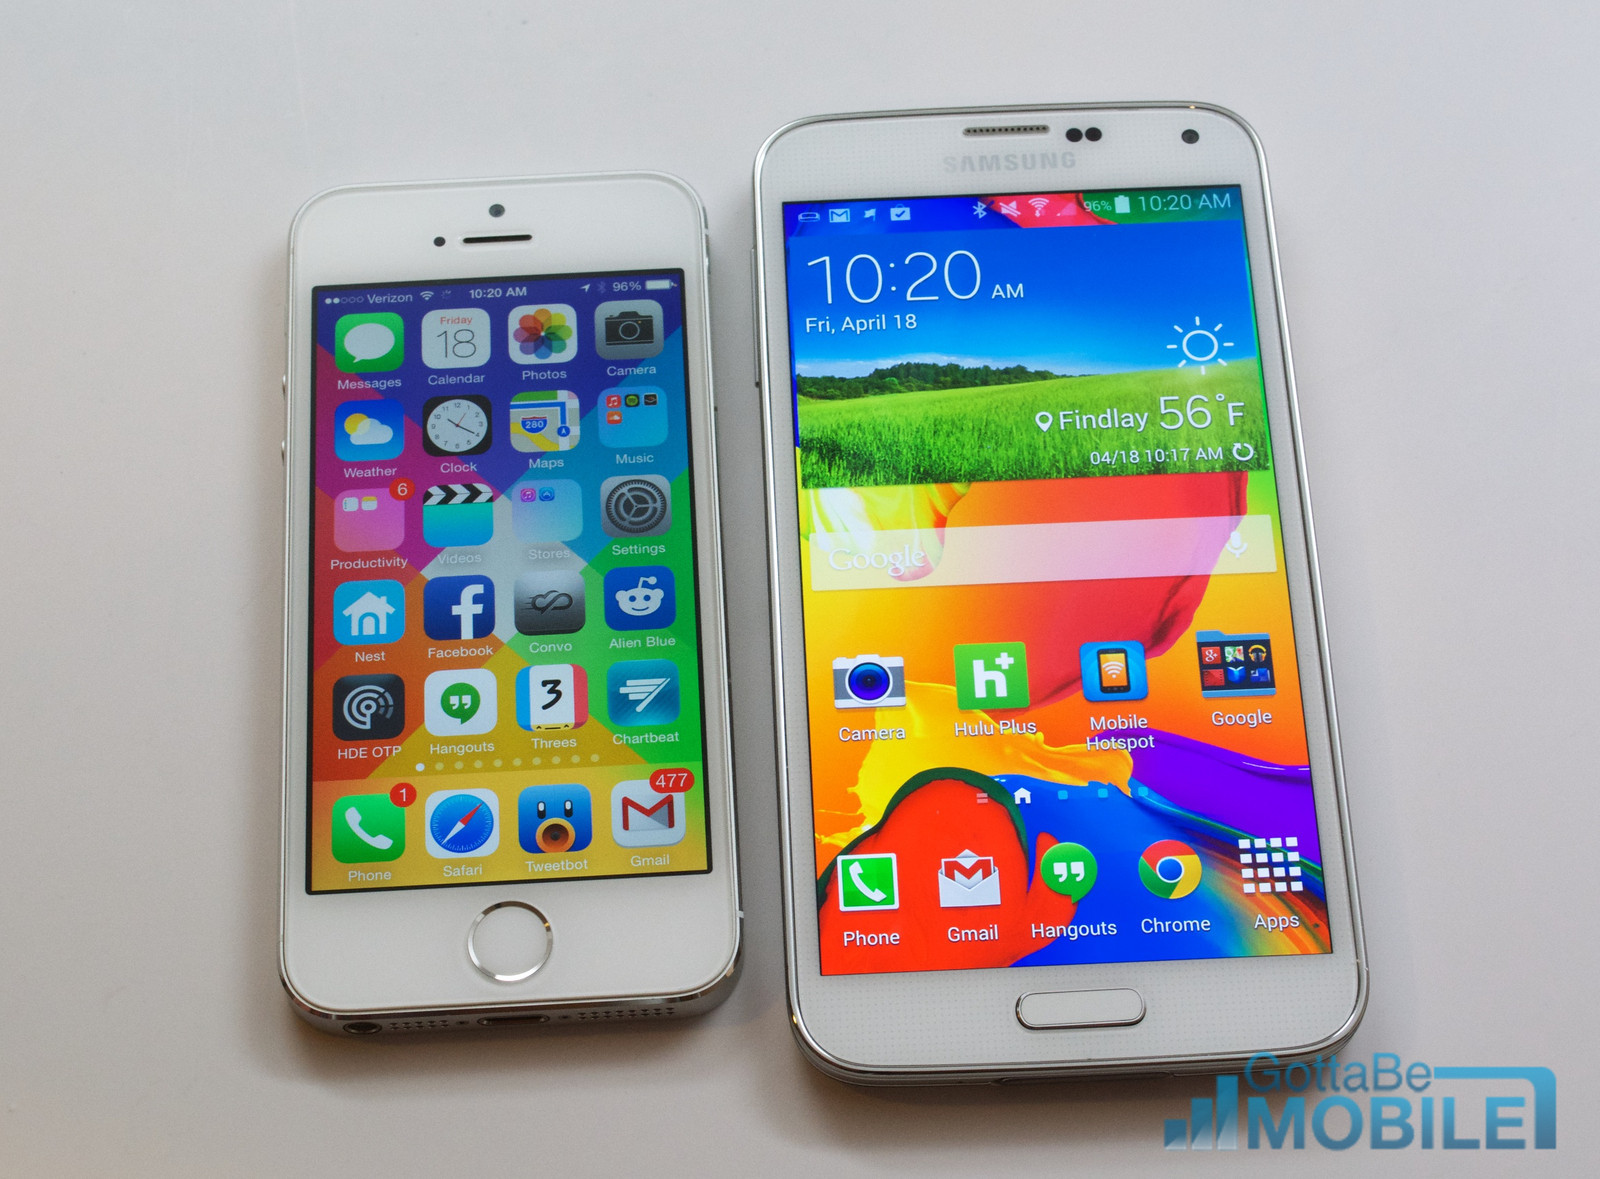 Iphone Misure Samsung Galaxy S5 Vs Iphone 5s Which Should I Buy Video